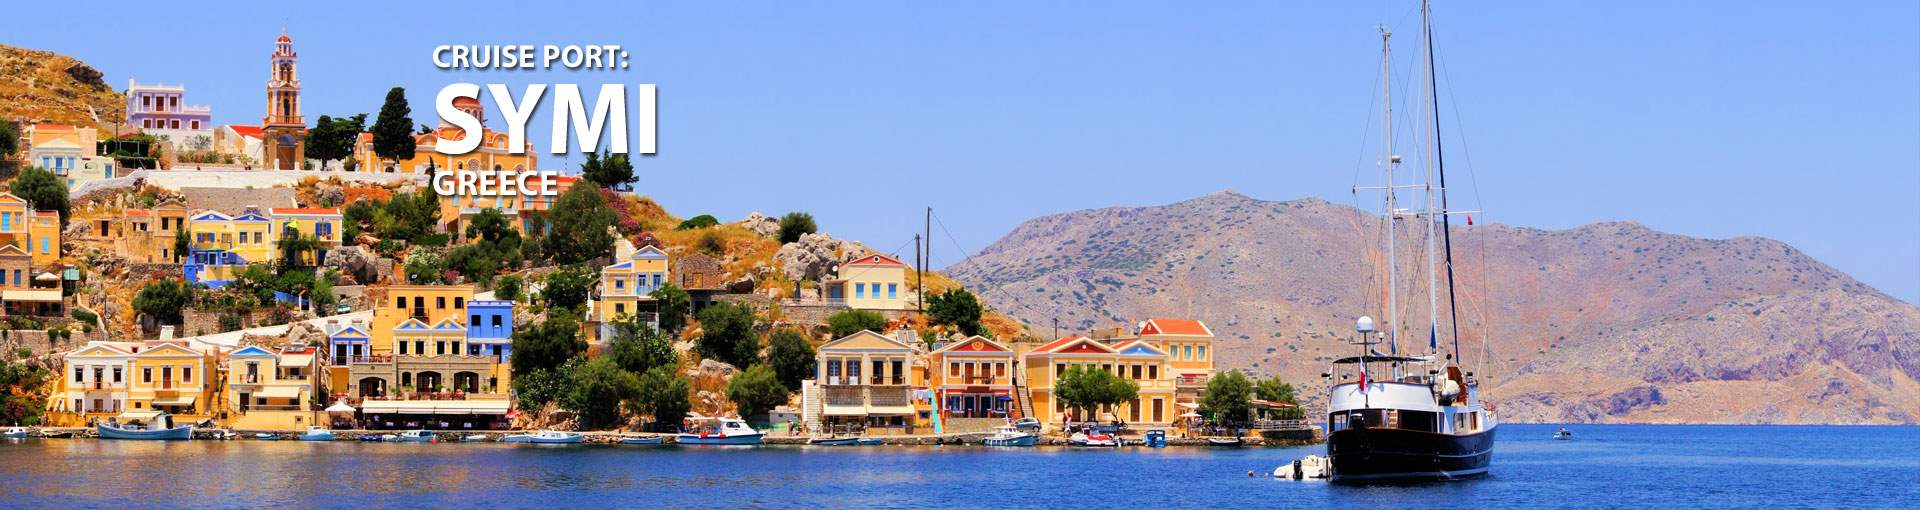 Cruises to Symi, Greece